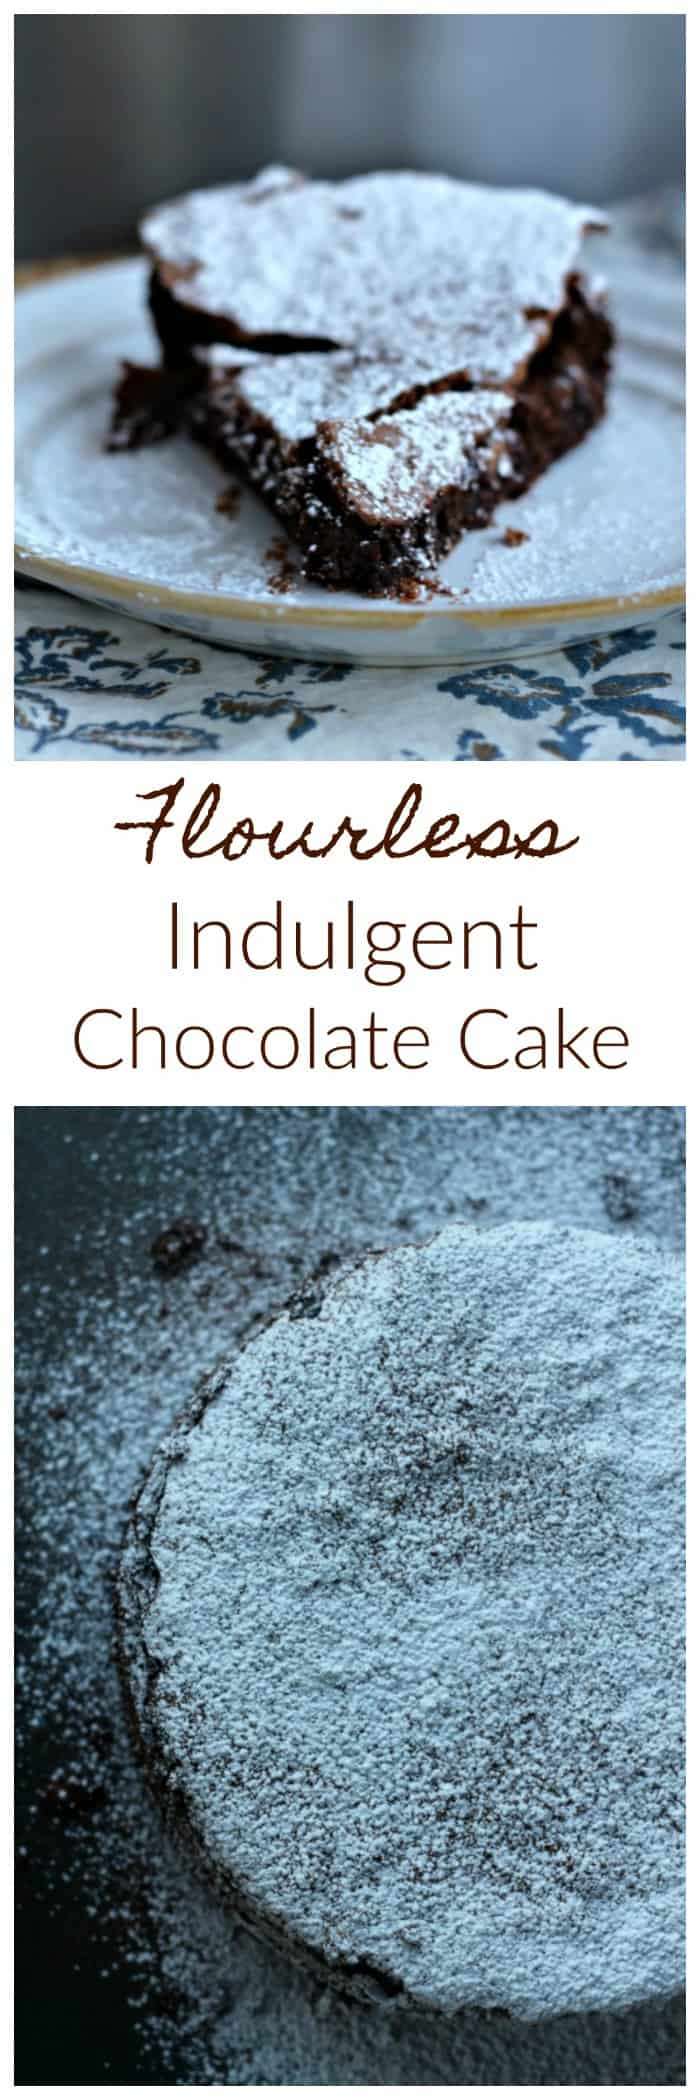 Flourless Indulgent Chocolate Explosion Cake!  Pure Chocolate Heaven! It's a super moist, chocolate fudge cake with a very dainty, crisp crust enrobing the cake.  It reminds me of a delectable chocolate cloud of heavenly bliss and it's insane with chocolate explosions of love in every bite!  #chocolate #flourless #cake #heaven #chocoholics #baking #valentinesday